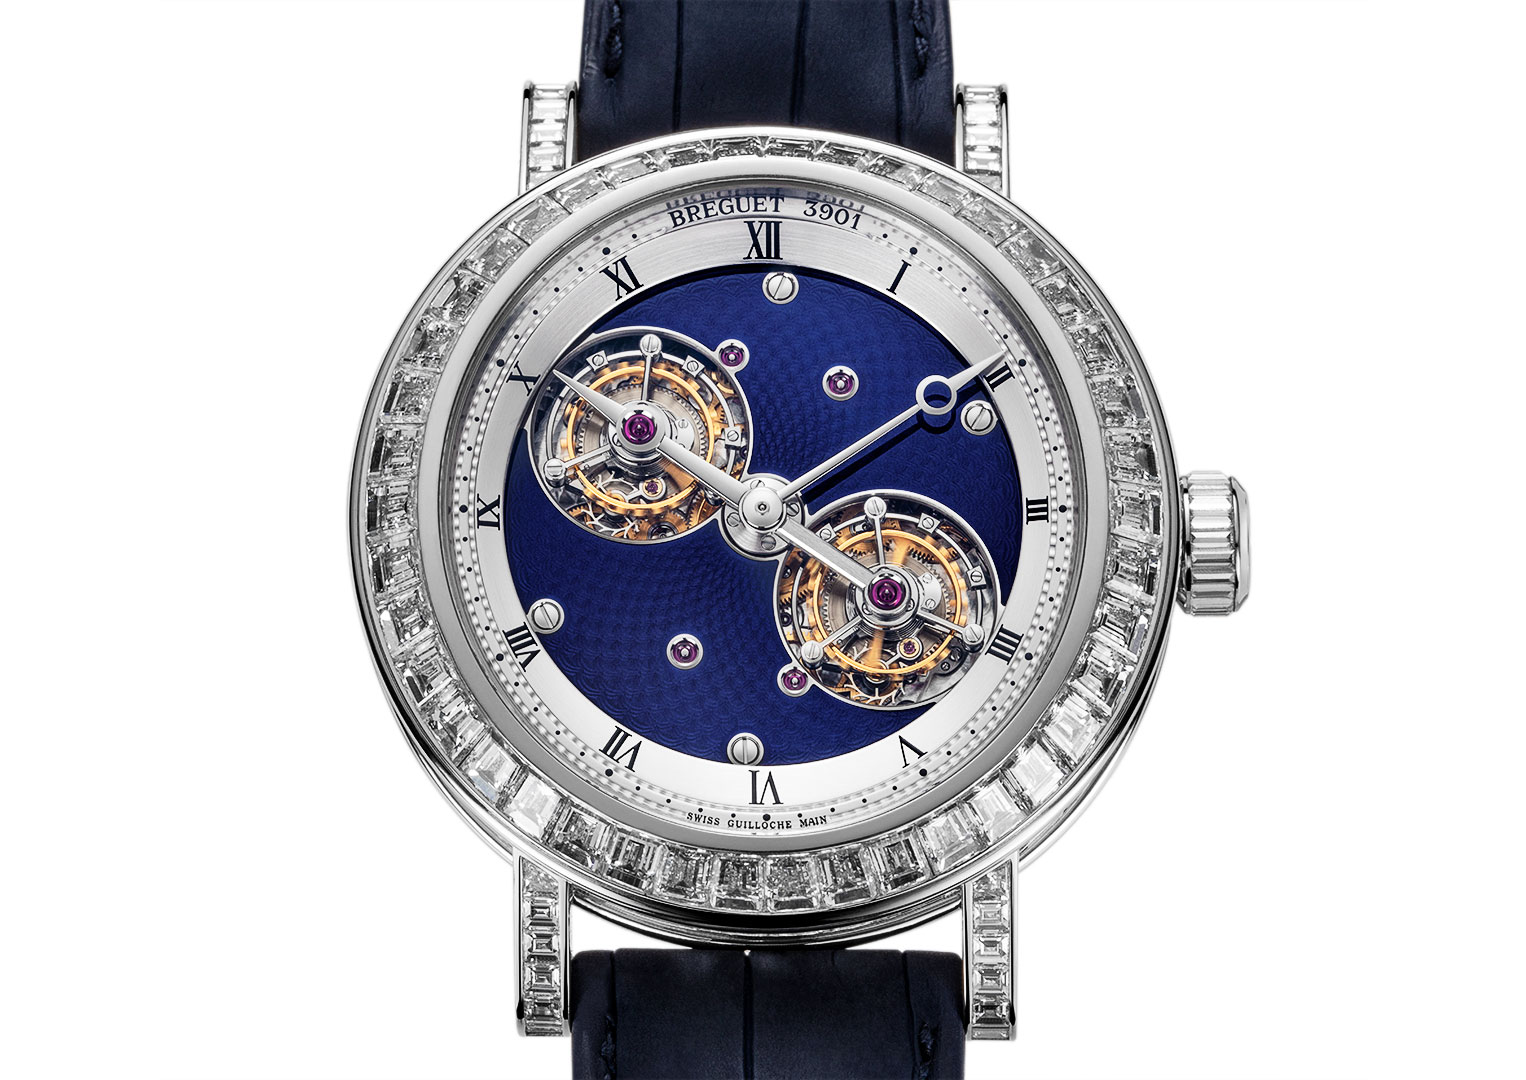 Breguet was founded by Abraham-Louis Breguet in 1775, Paris, France